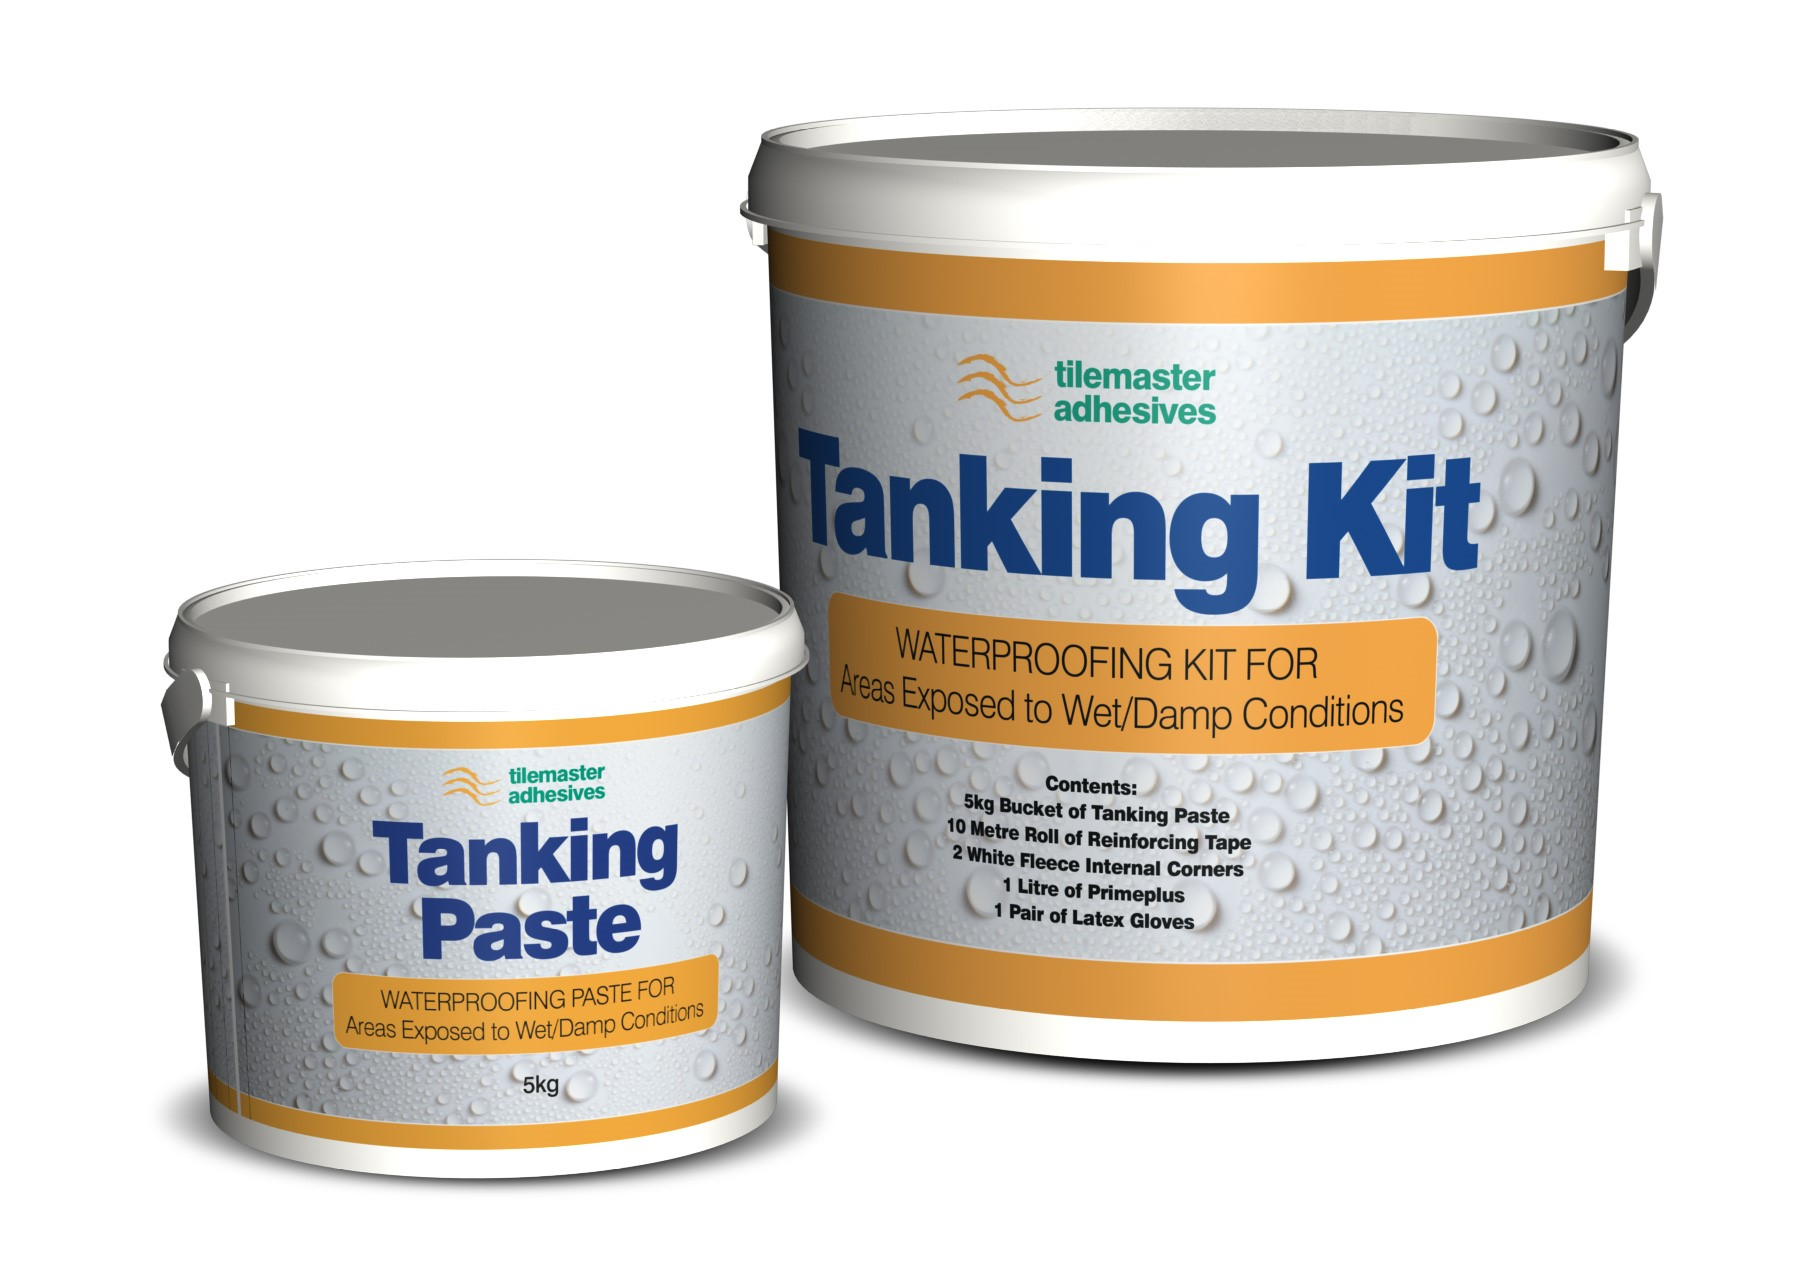 Fast, waterproof solution with Tilemaster Tanking System